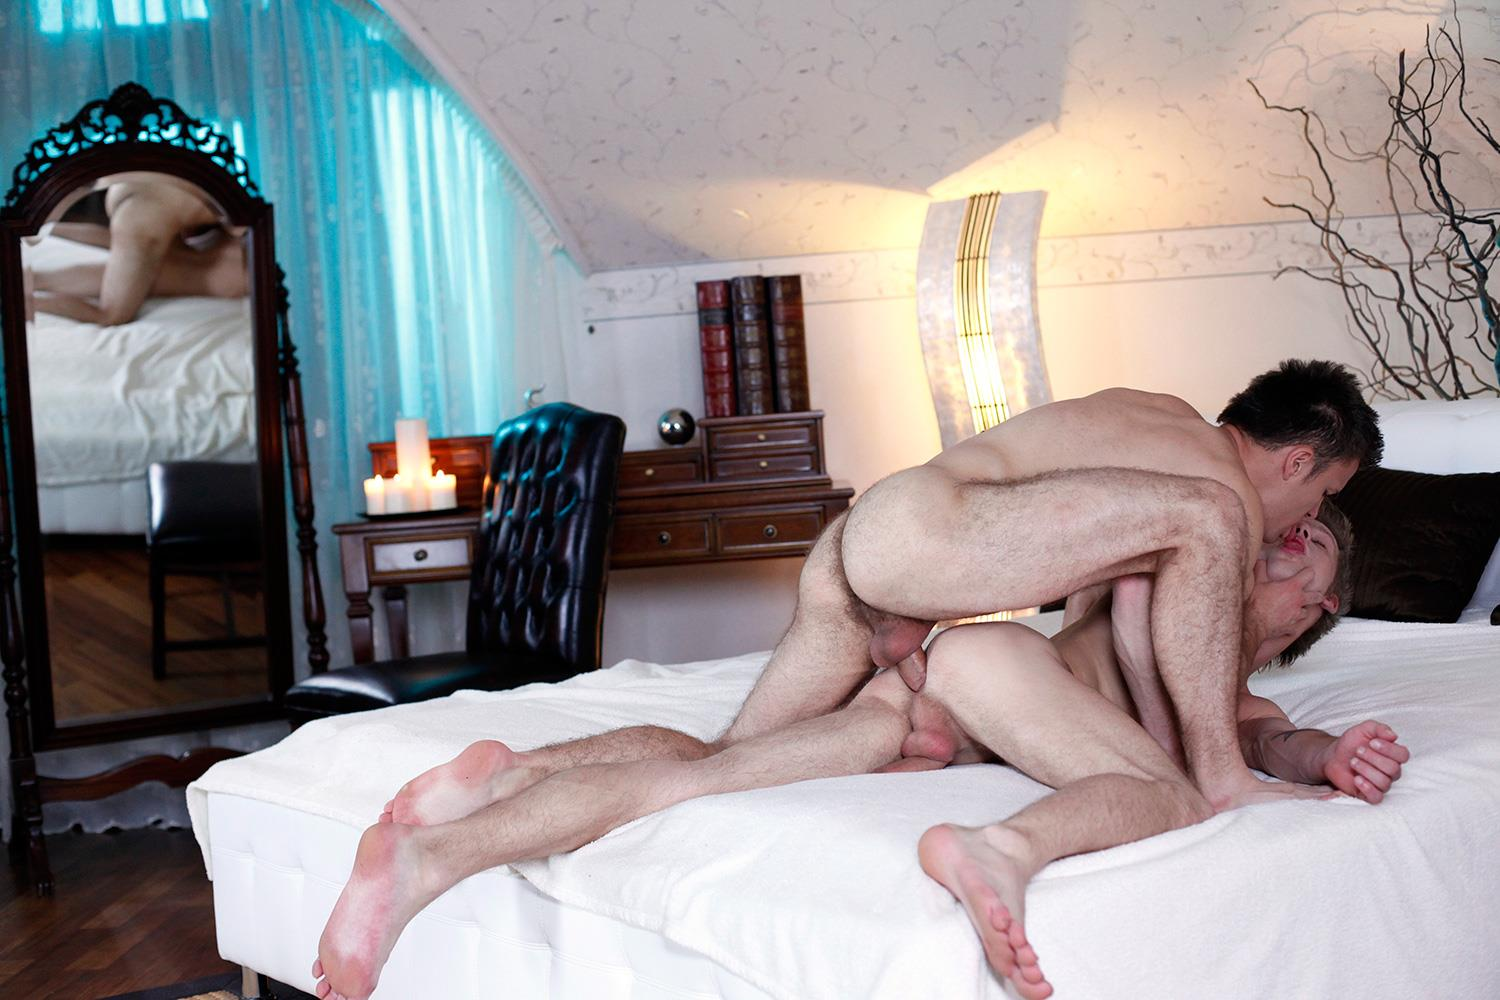 Staxus-Arthur-Kral-and-Harry-Vakker-Muscle-Twinks-With-Big-Uncut-Cocks-Bareback-Amateur-Gay-Porn-08 Muscle Twinks With Big Uncut Cocks Fucking Bareback